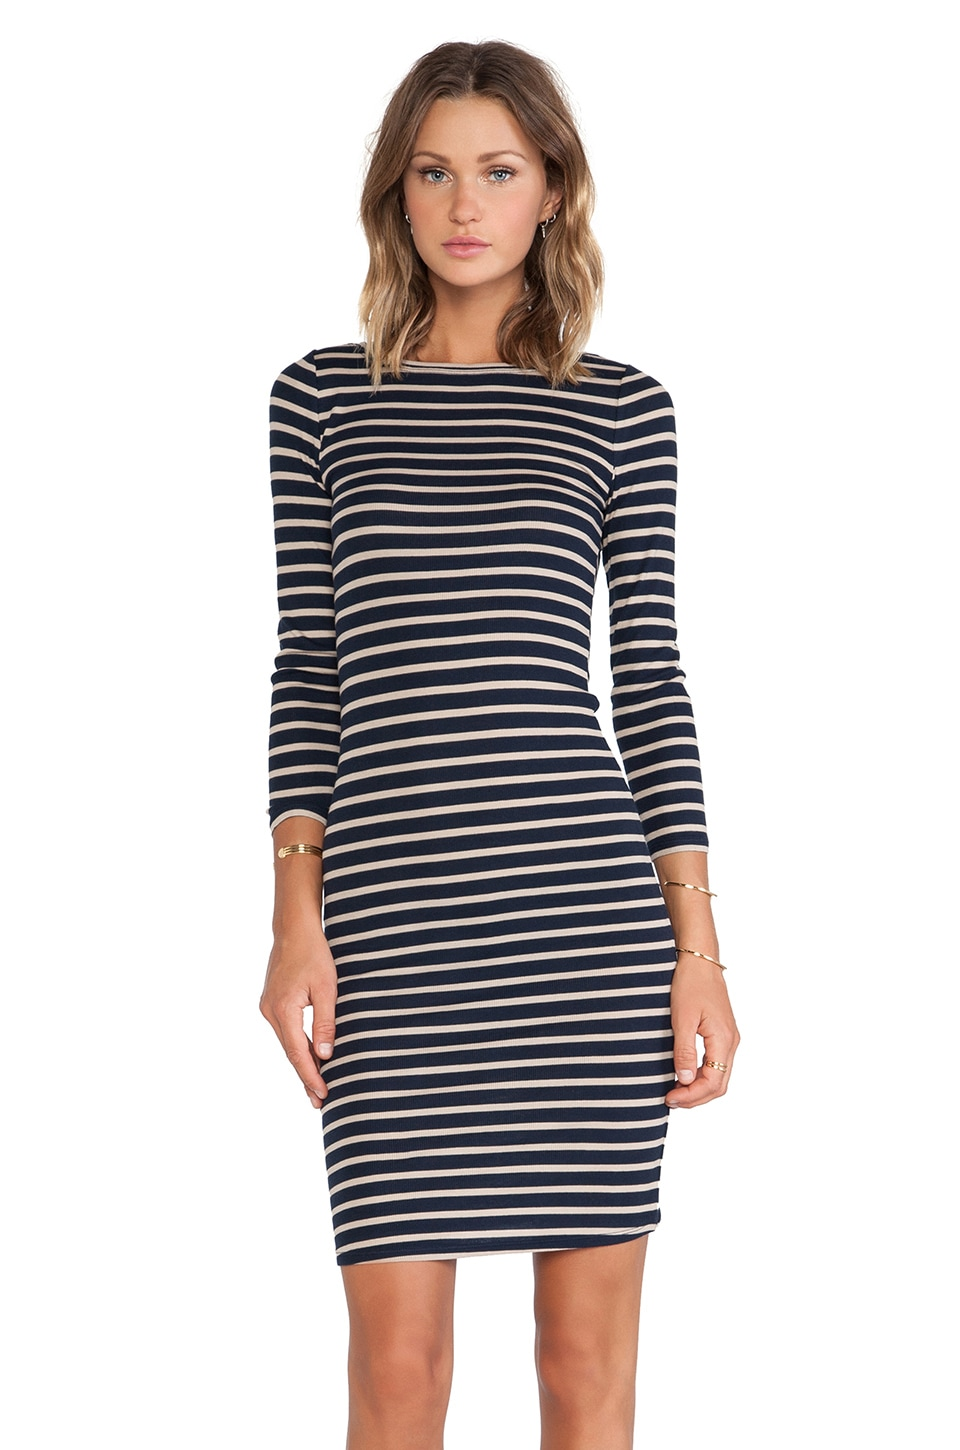 BCBGMAXAZRIA Long Sleeve Striped Dress in Navy/Khaki